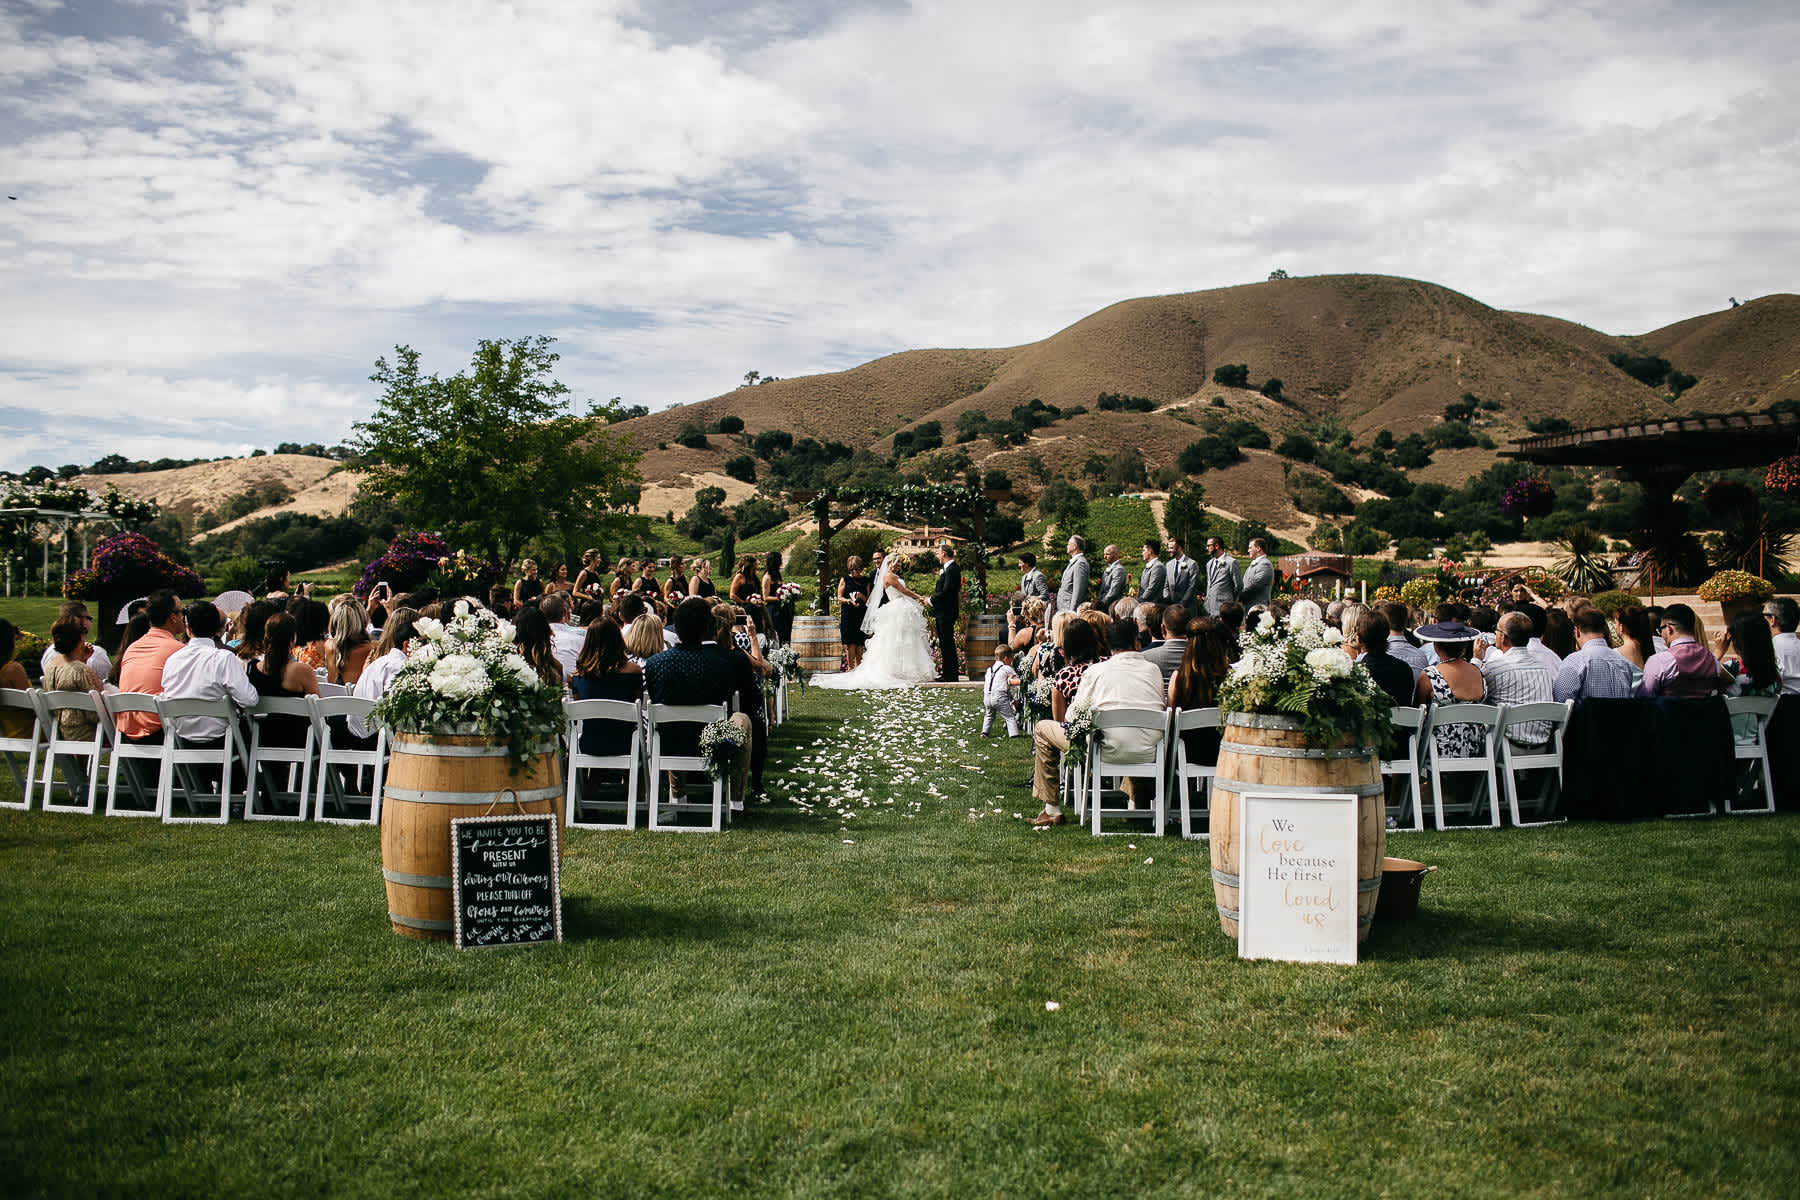 kirigin-cellars-gilroy-summer-sunset-wedding-39